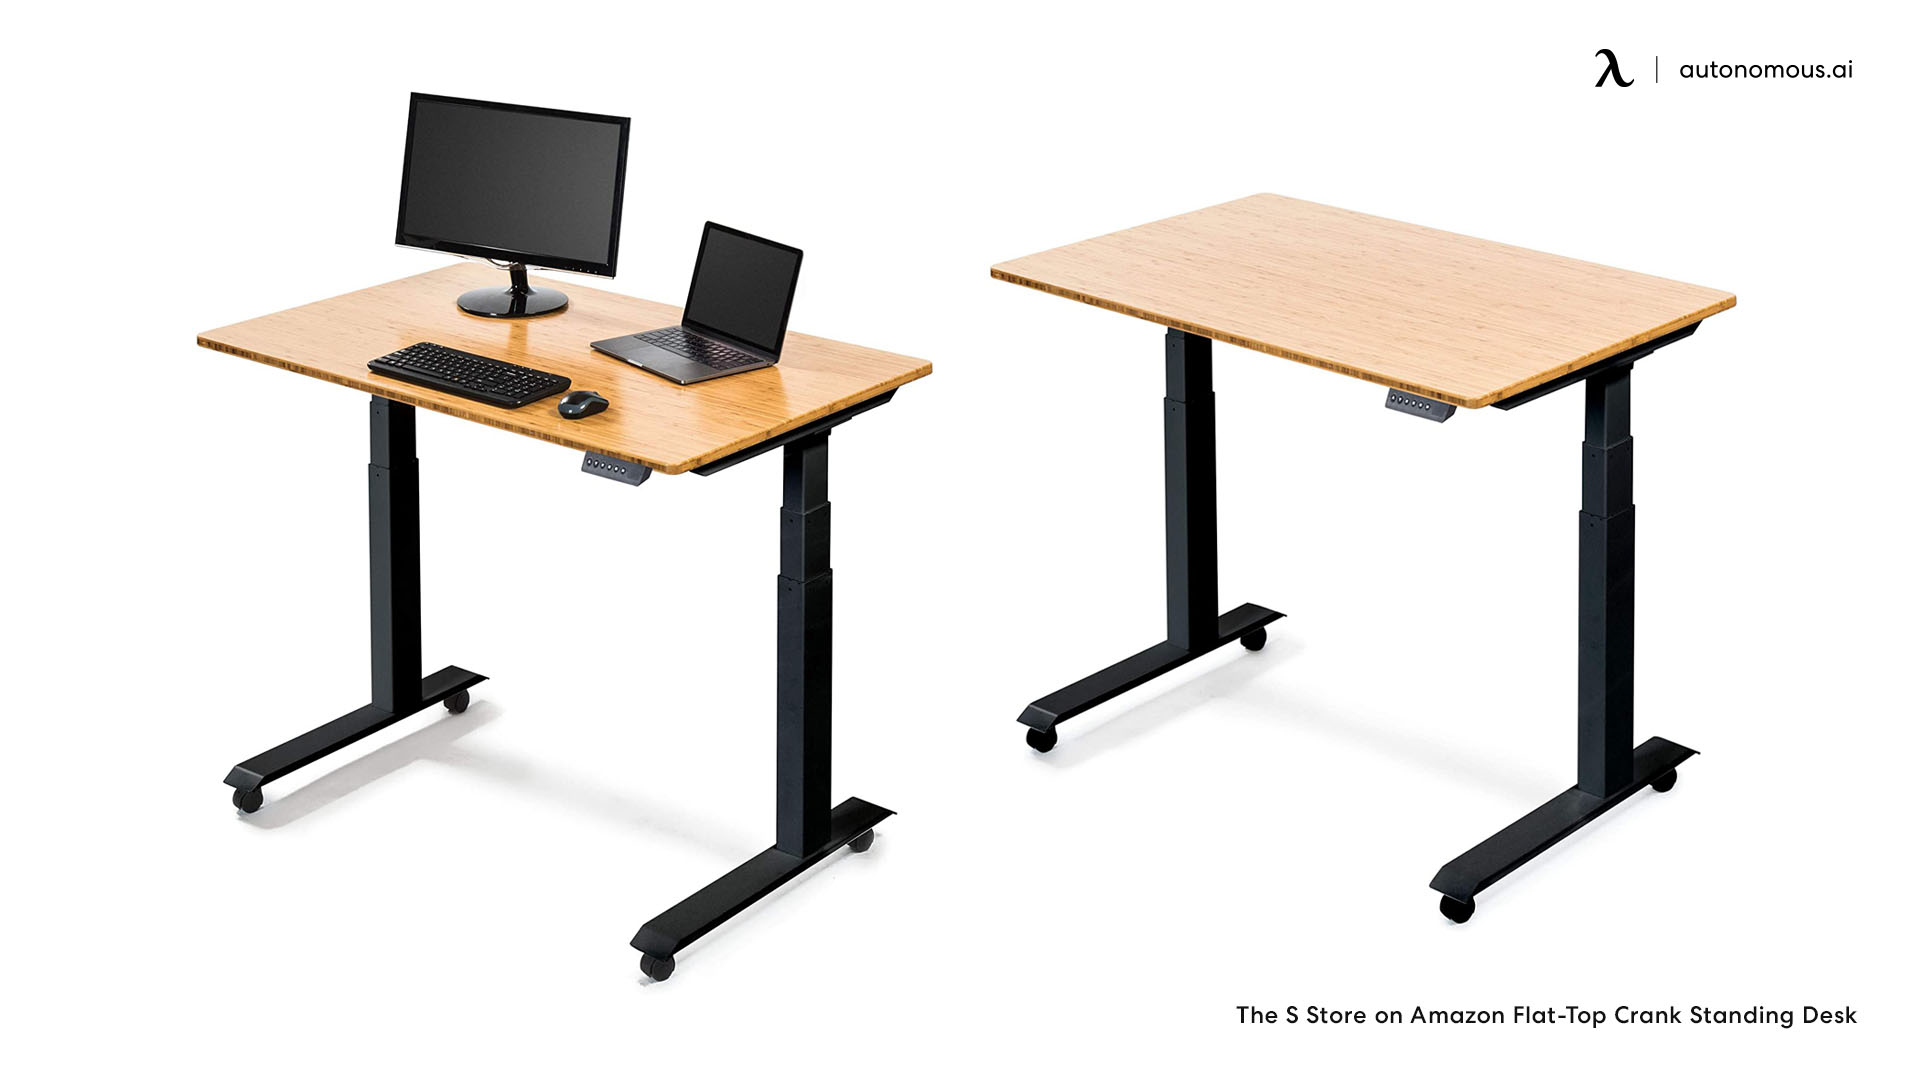 The Flat-Top Crank Standing Desk by the S Store on Amazon